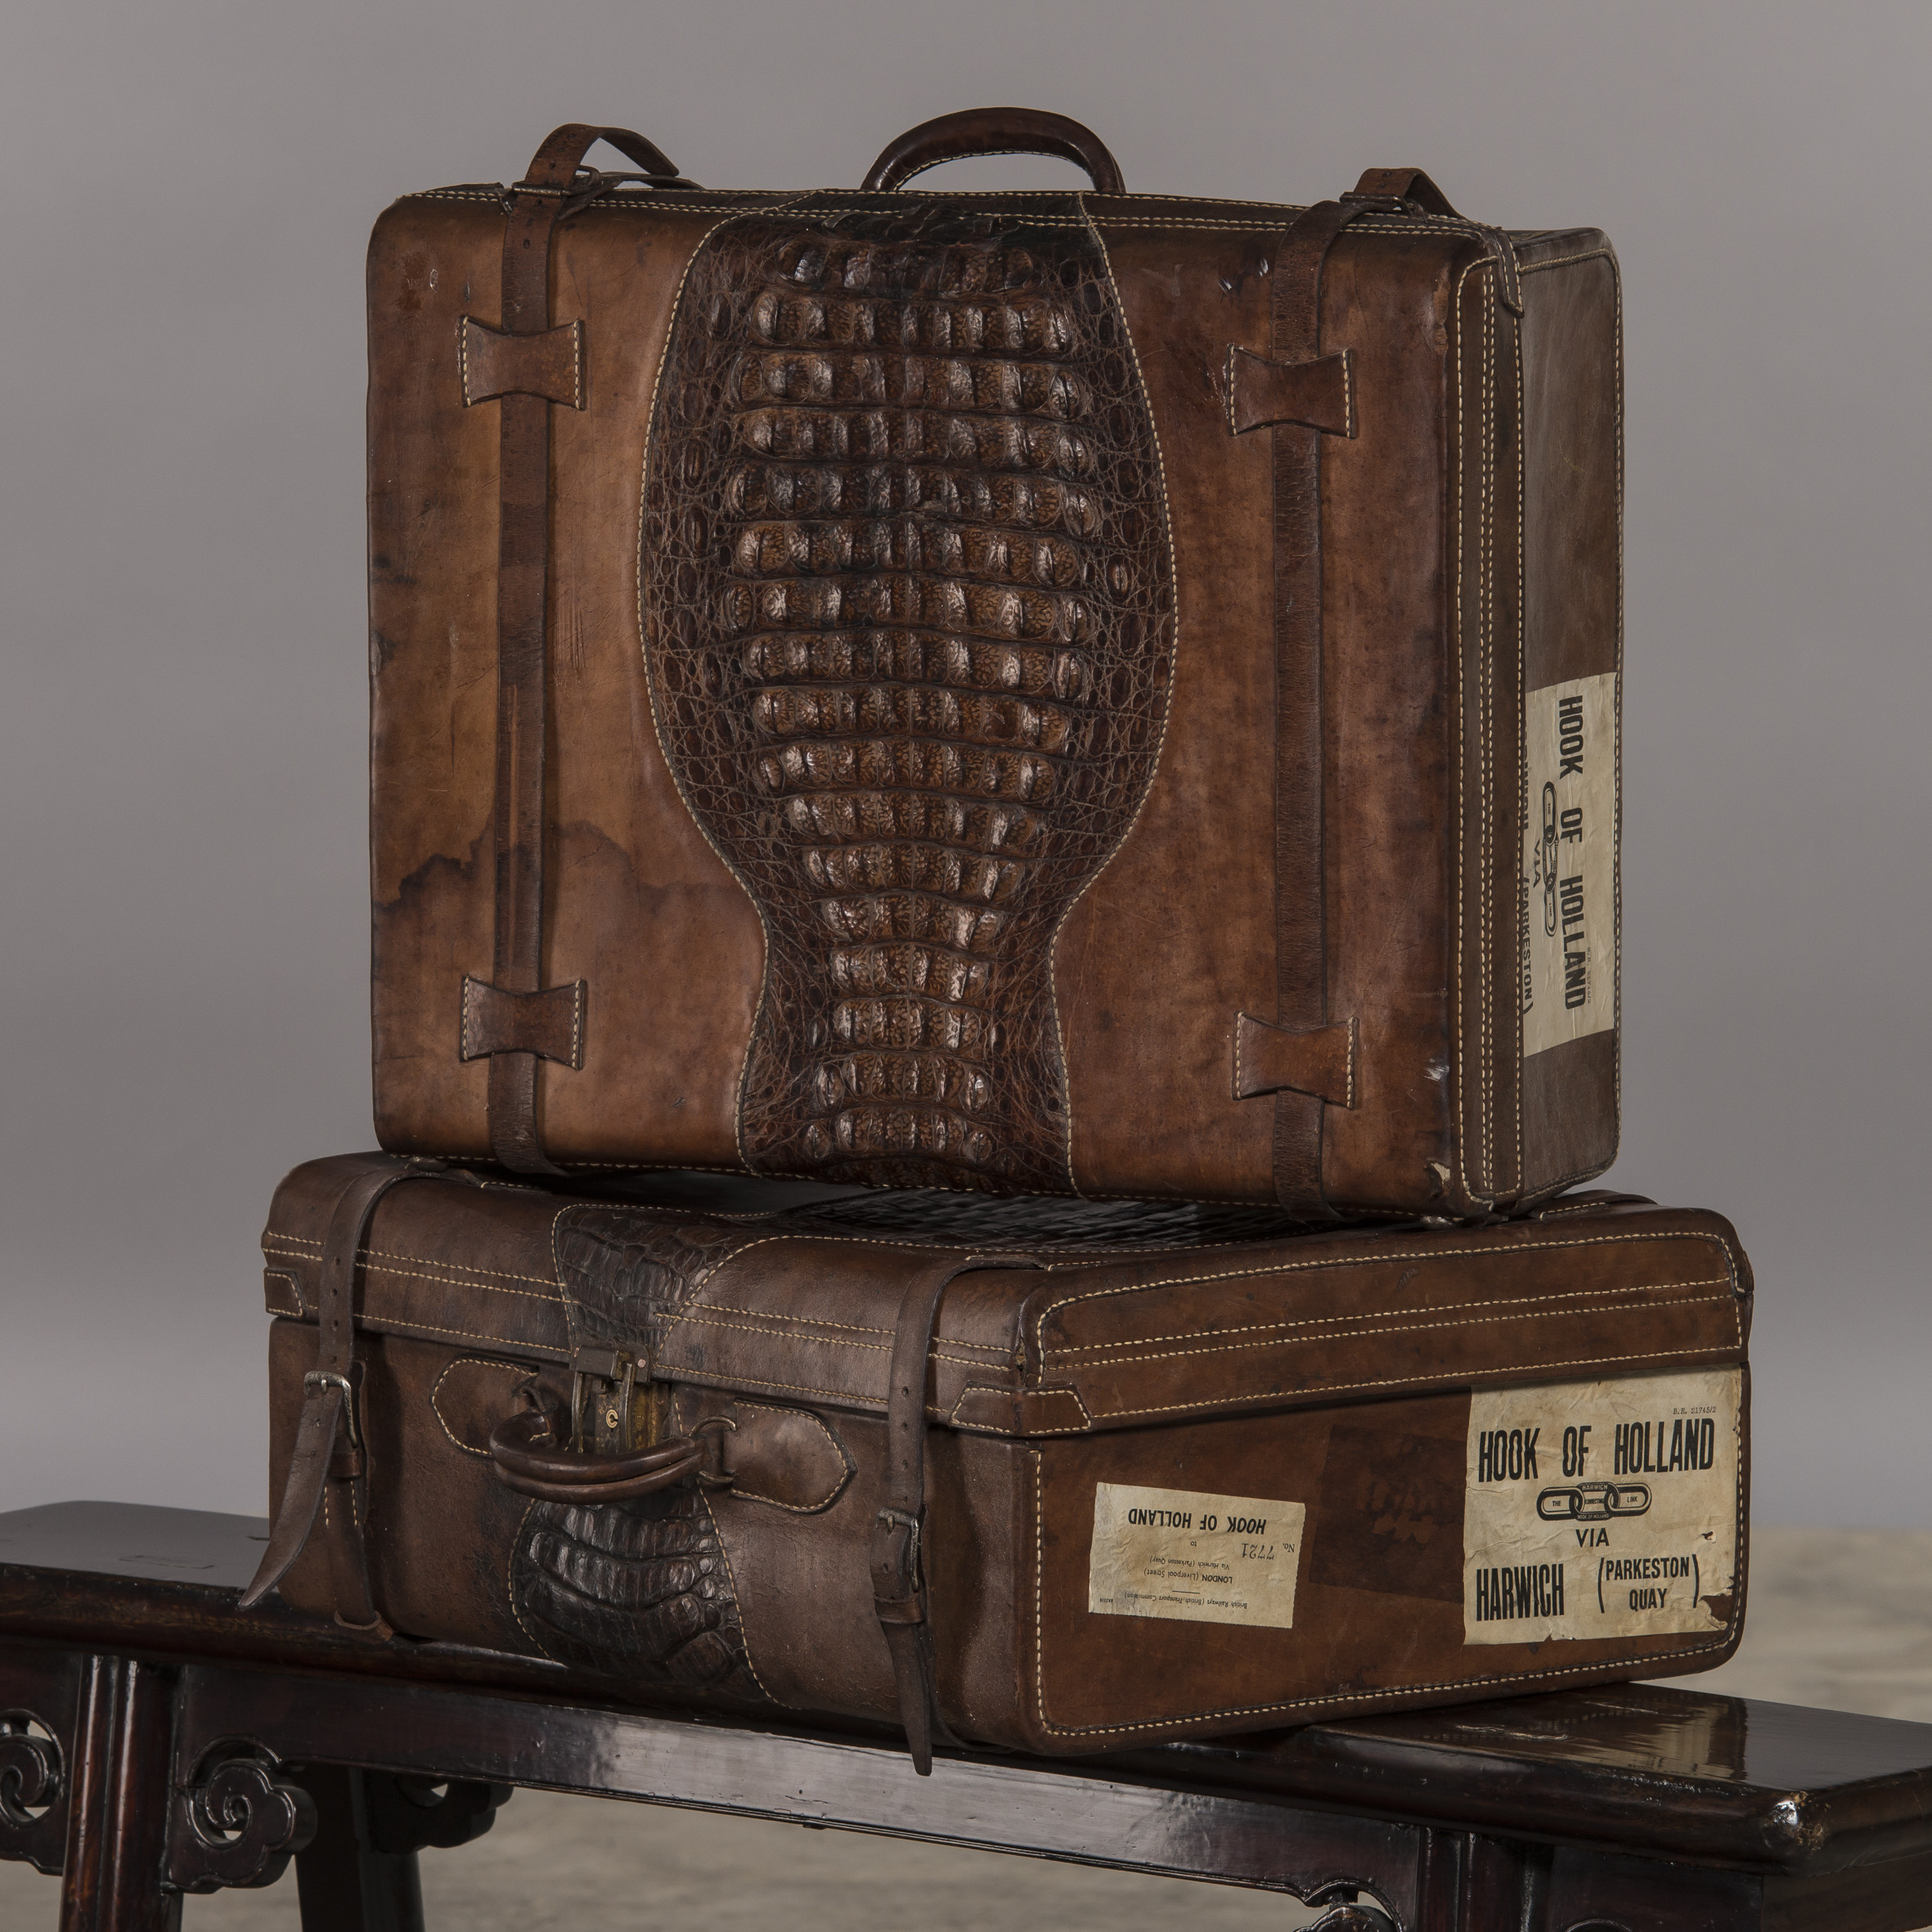 Suitcase with beautiful patina